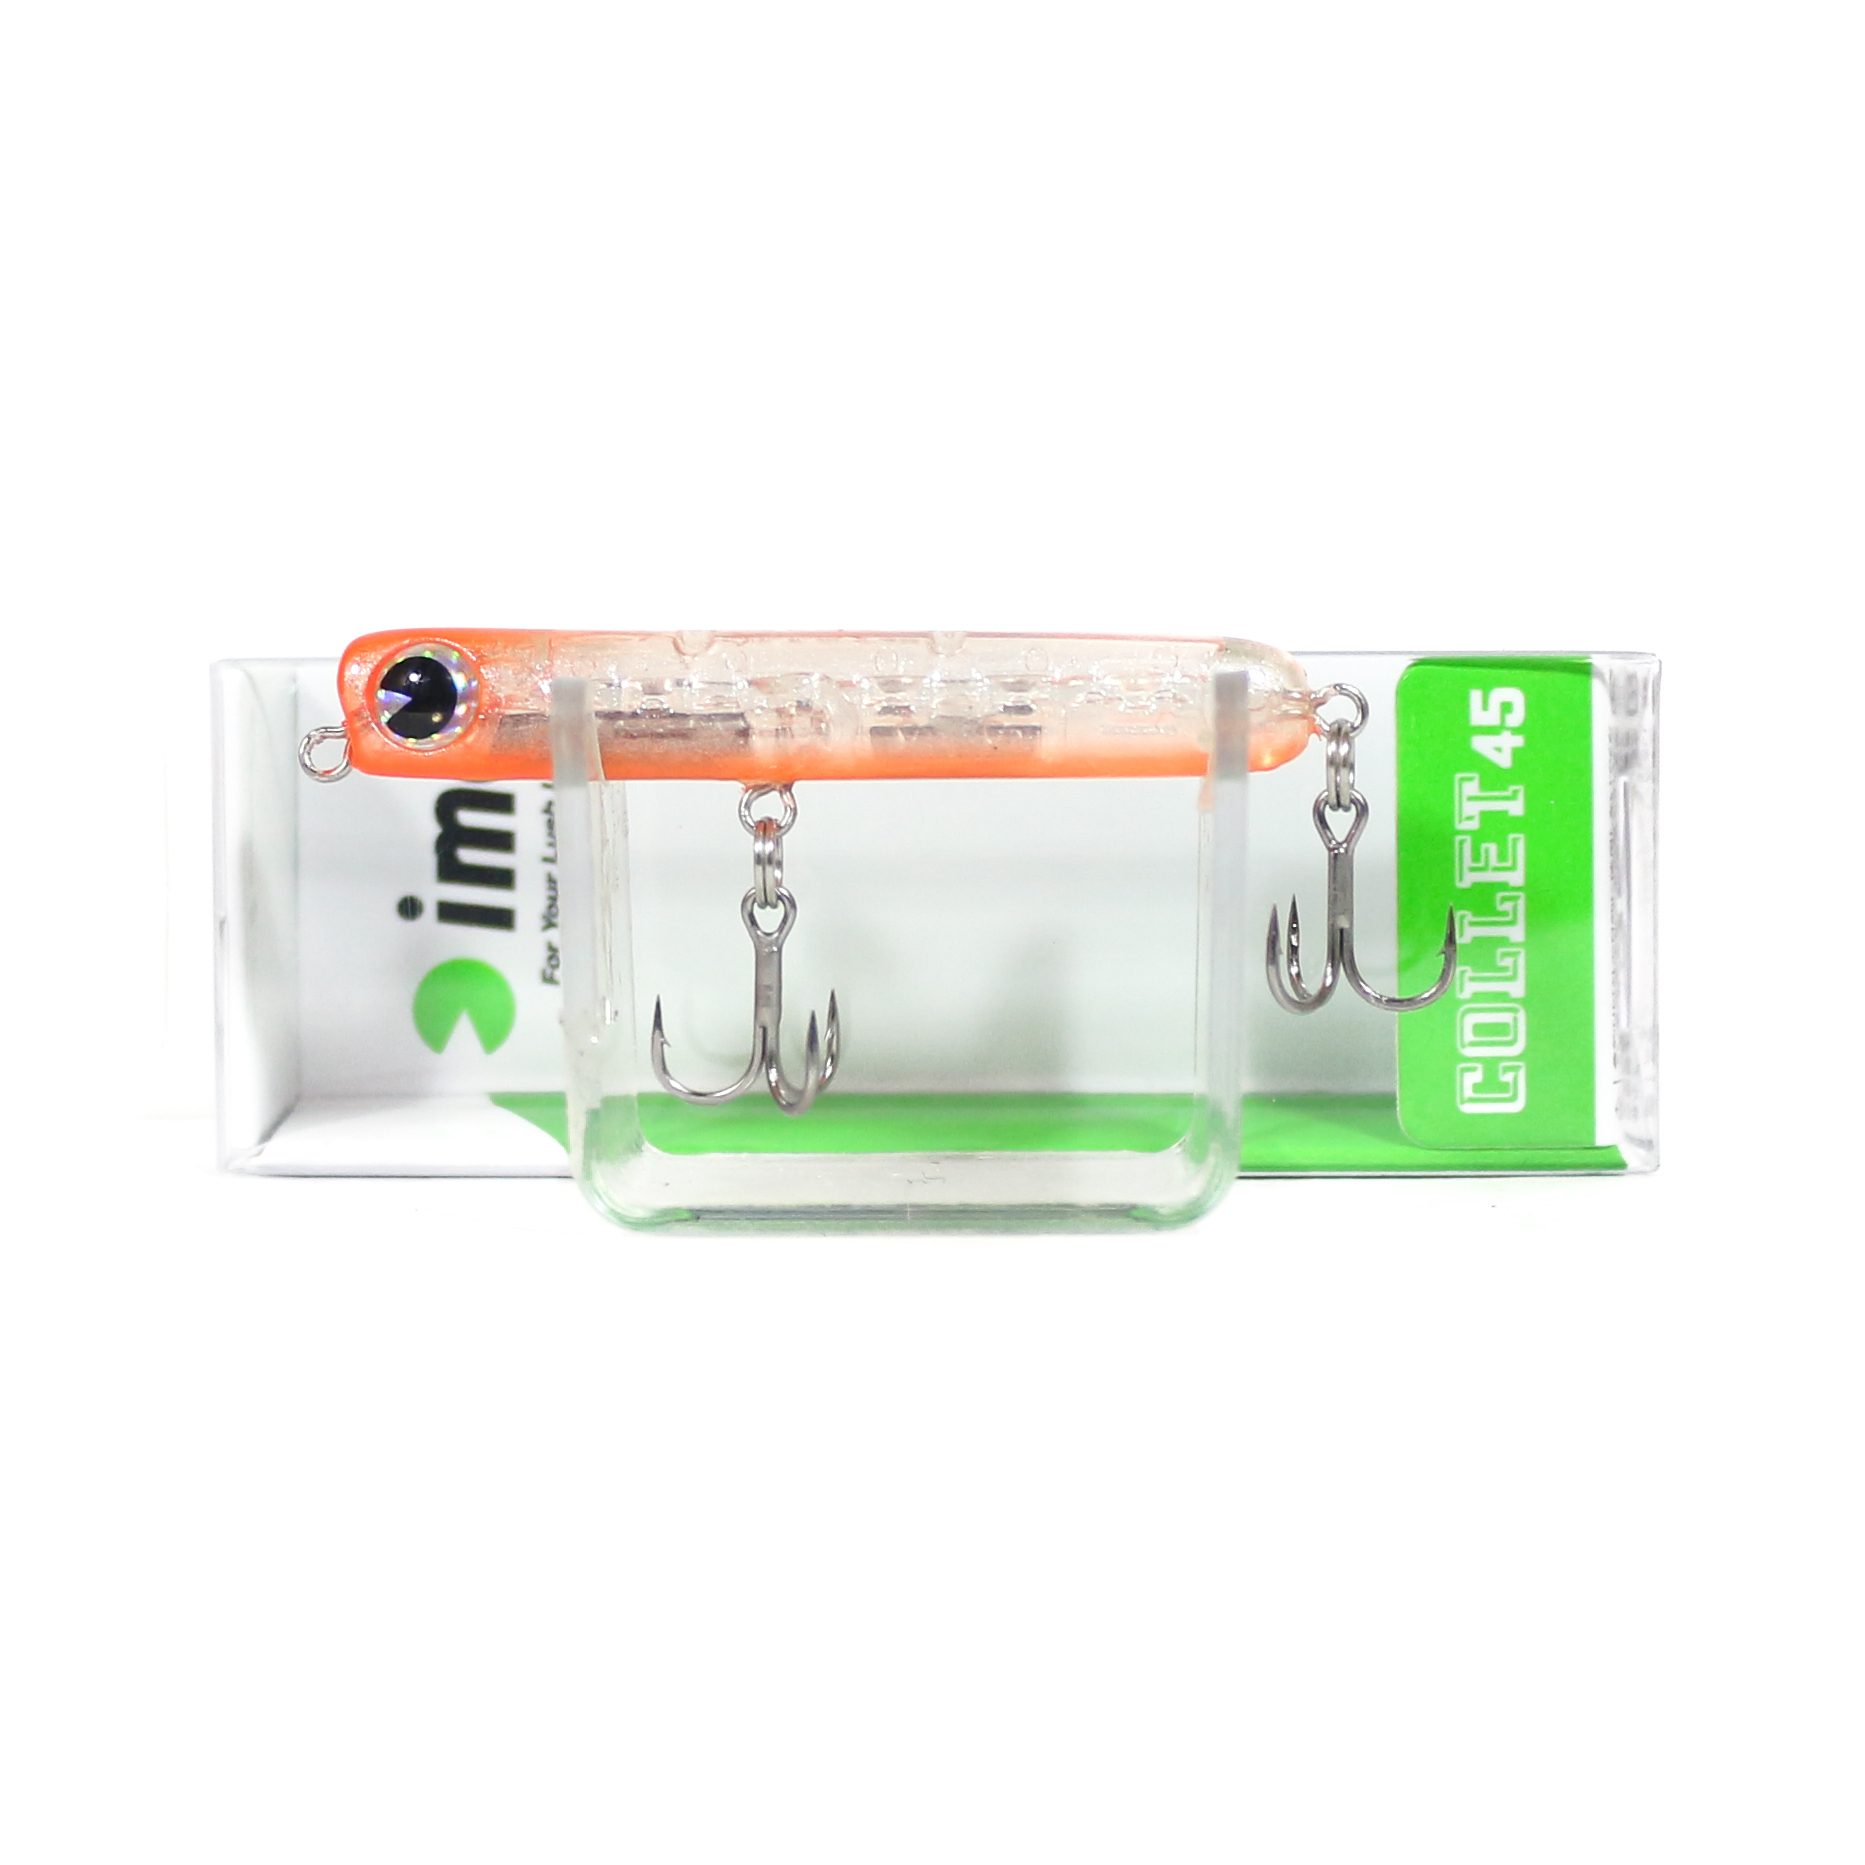 Ima Collet 45 Sinking Lure 008 (6252)